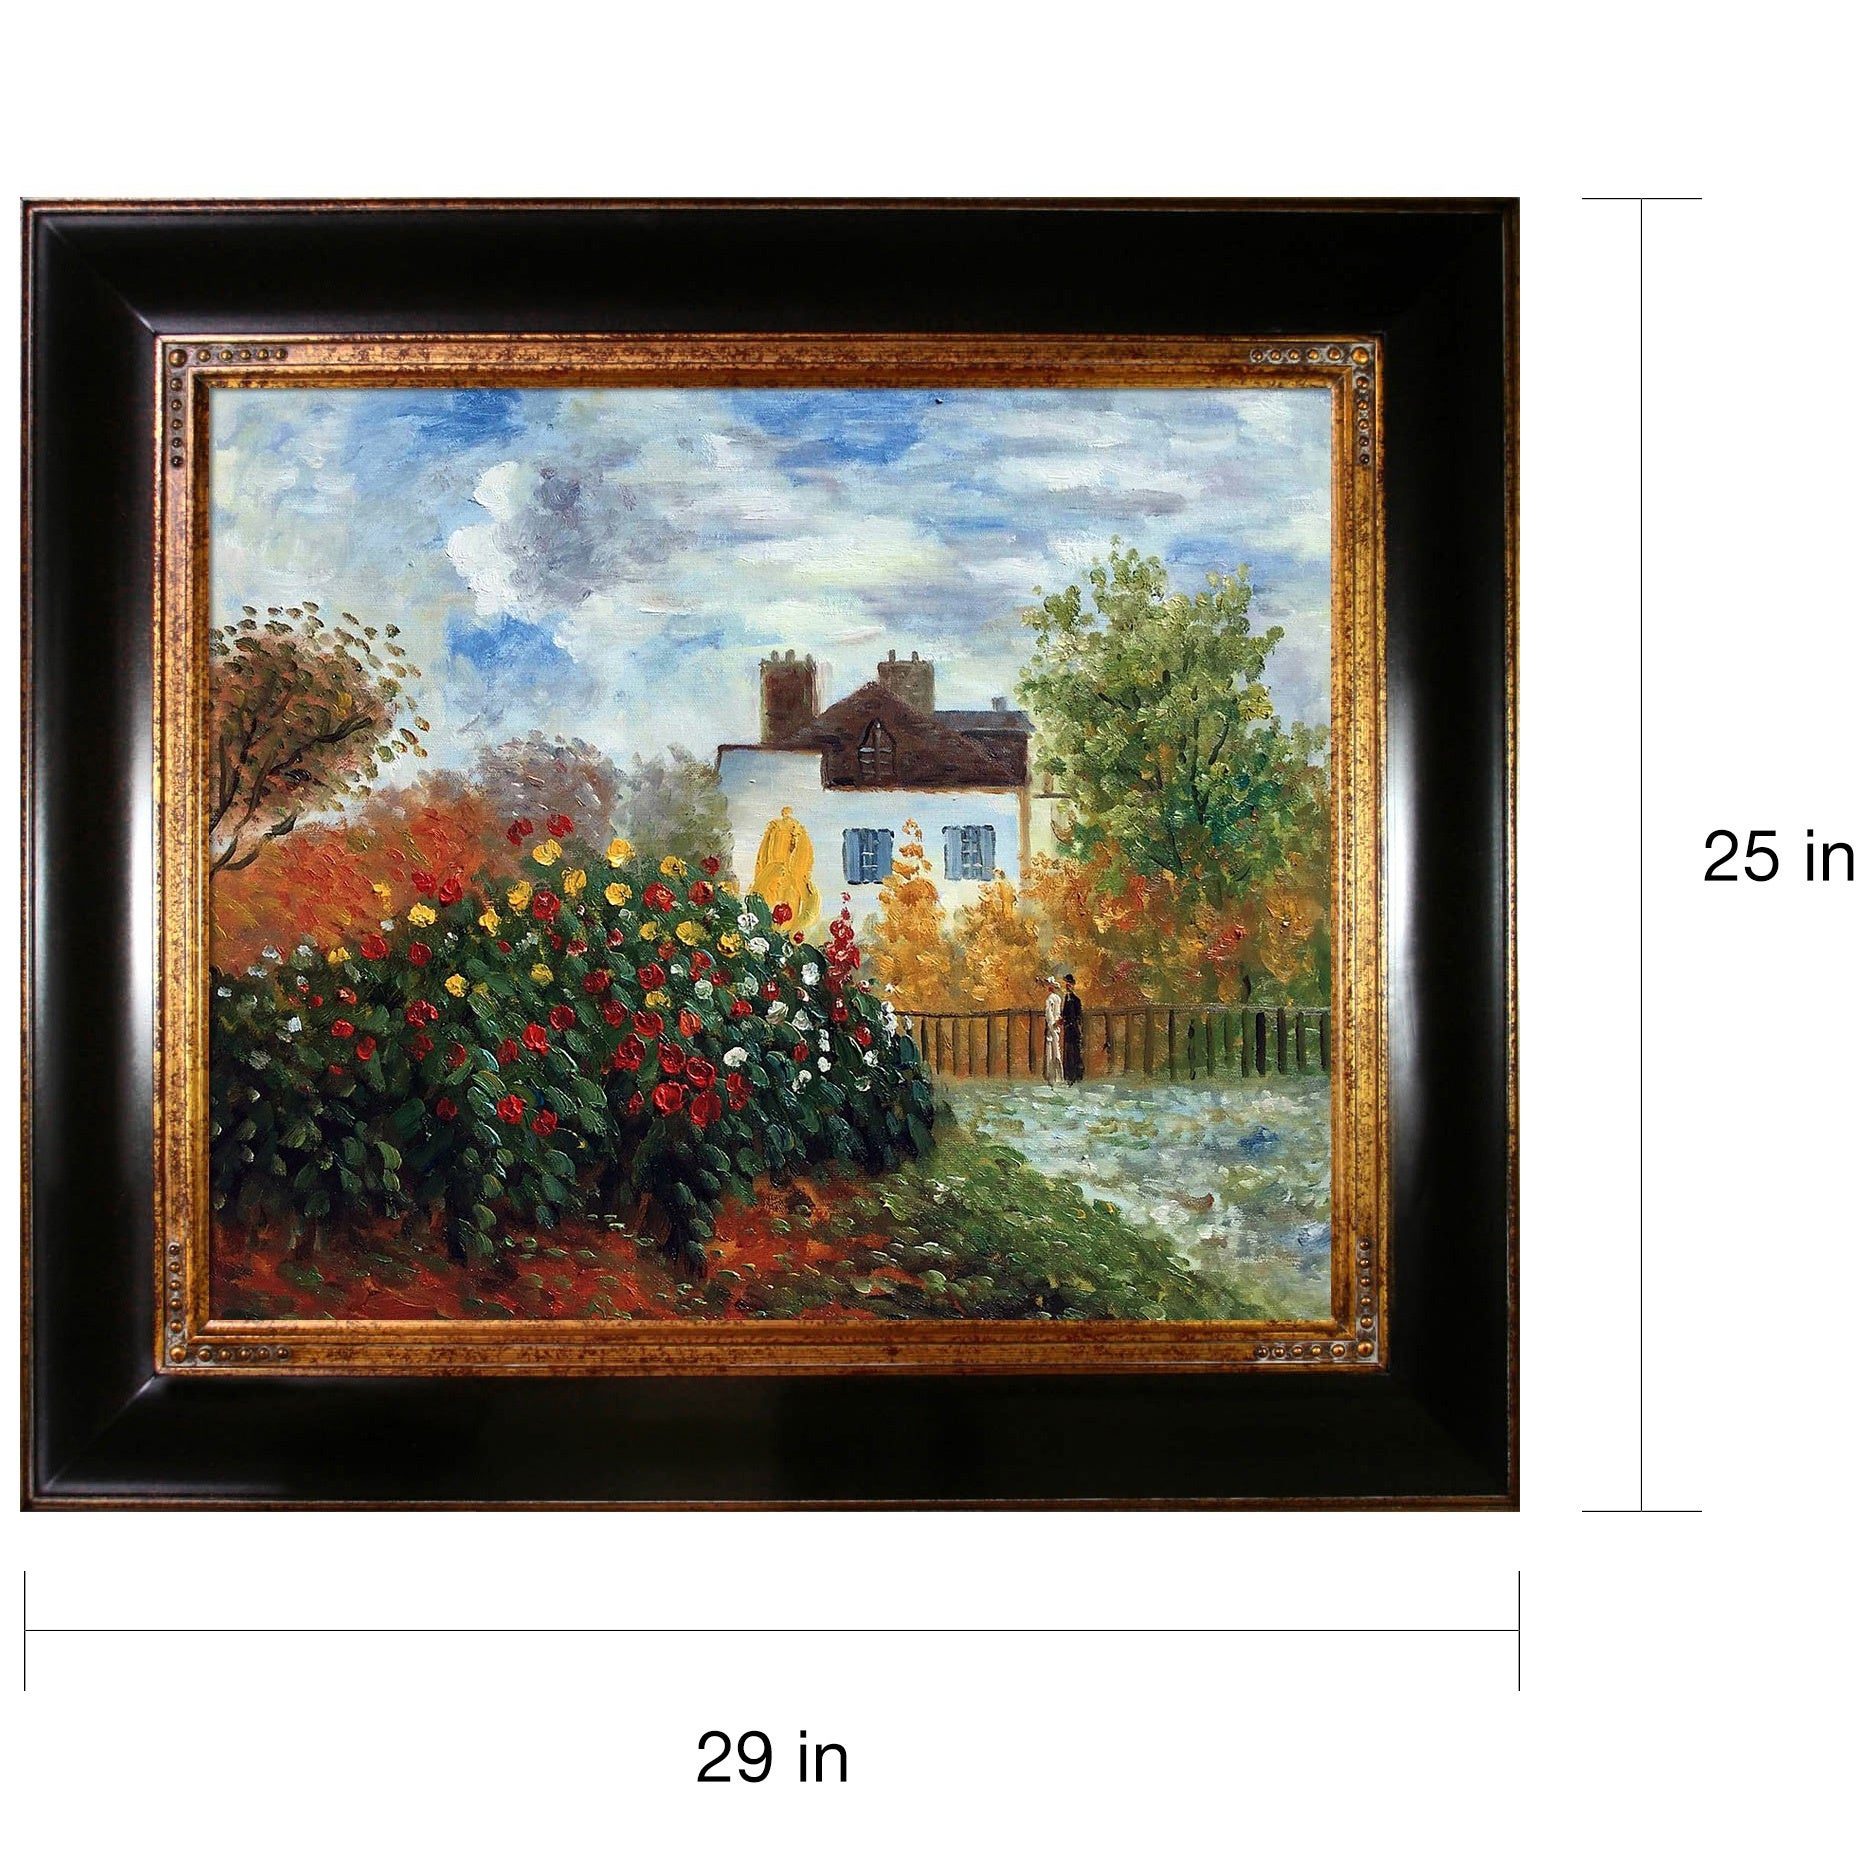 Claude Monet The Garden of Monet Hand Painted Oil Reproduction 25c0eae7 8460 466d 9540 e cff3c7